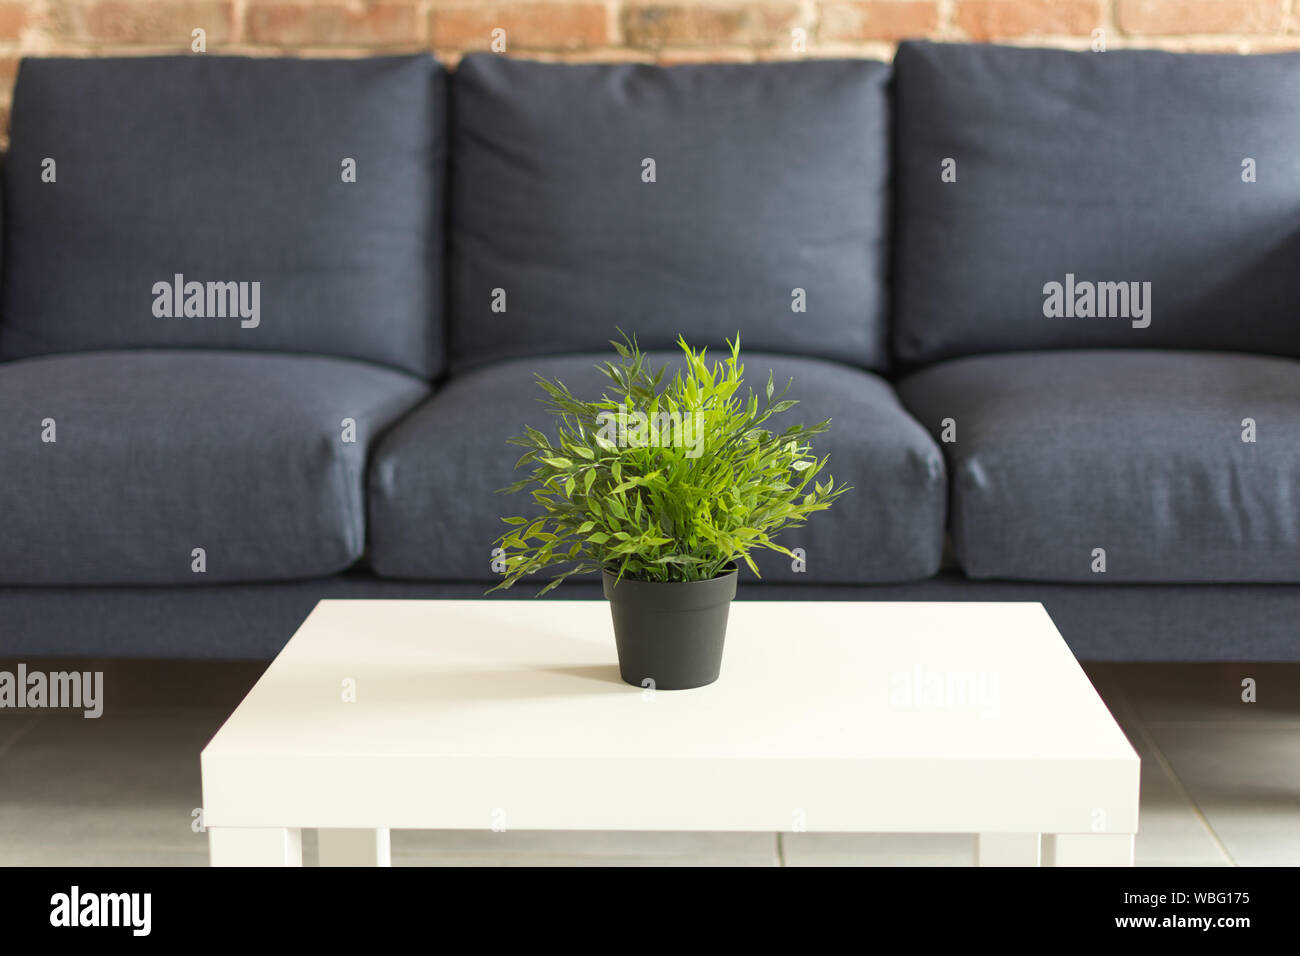 Picture of: Modern Living Room Interior Flowerpot On The White Coffee Table Green Plant In A Black Flowerpot On The Table Modern Blue Sofa With Cushions Stock Photo Alamy